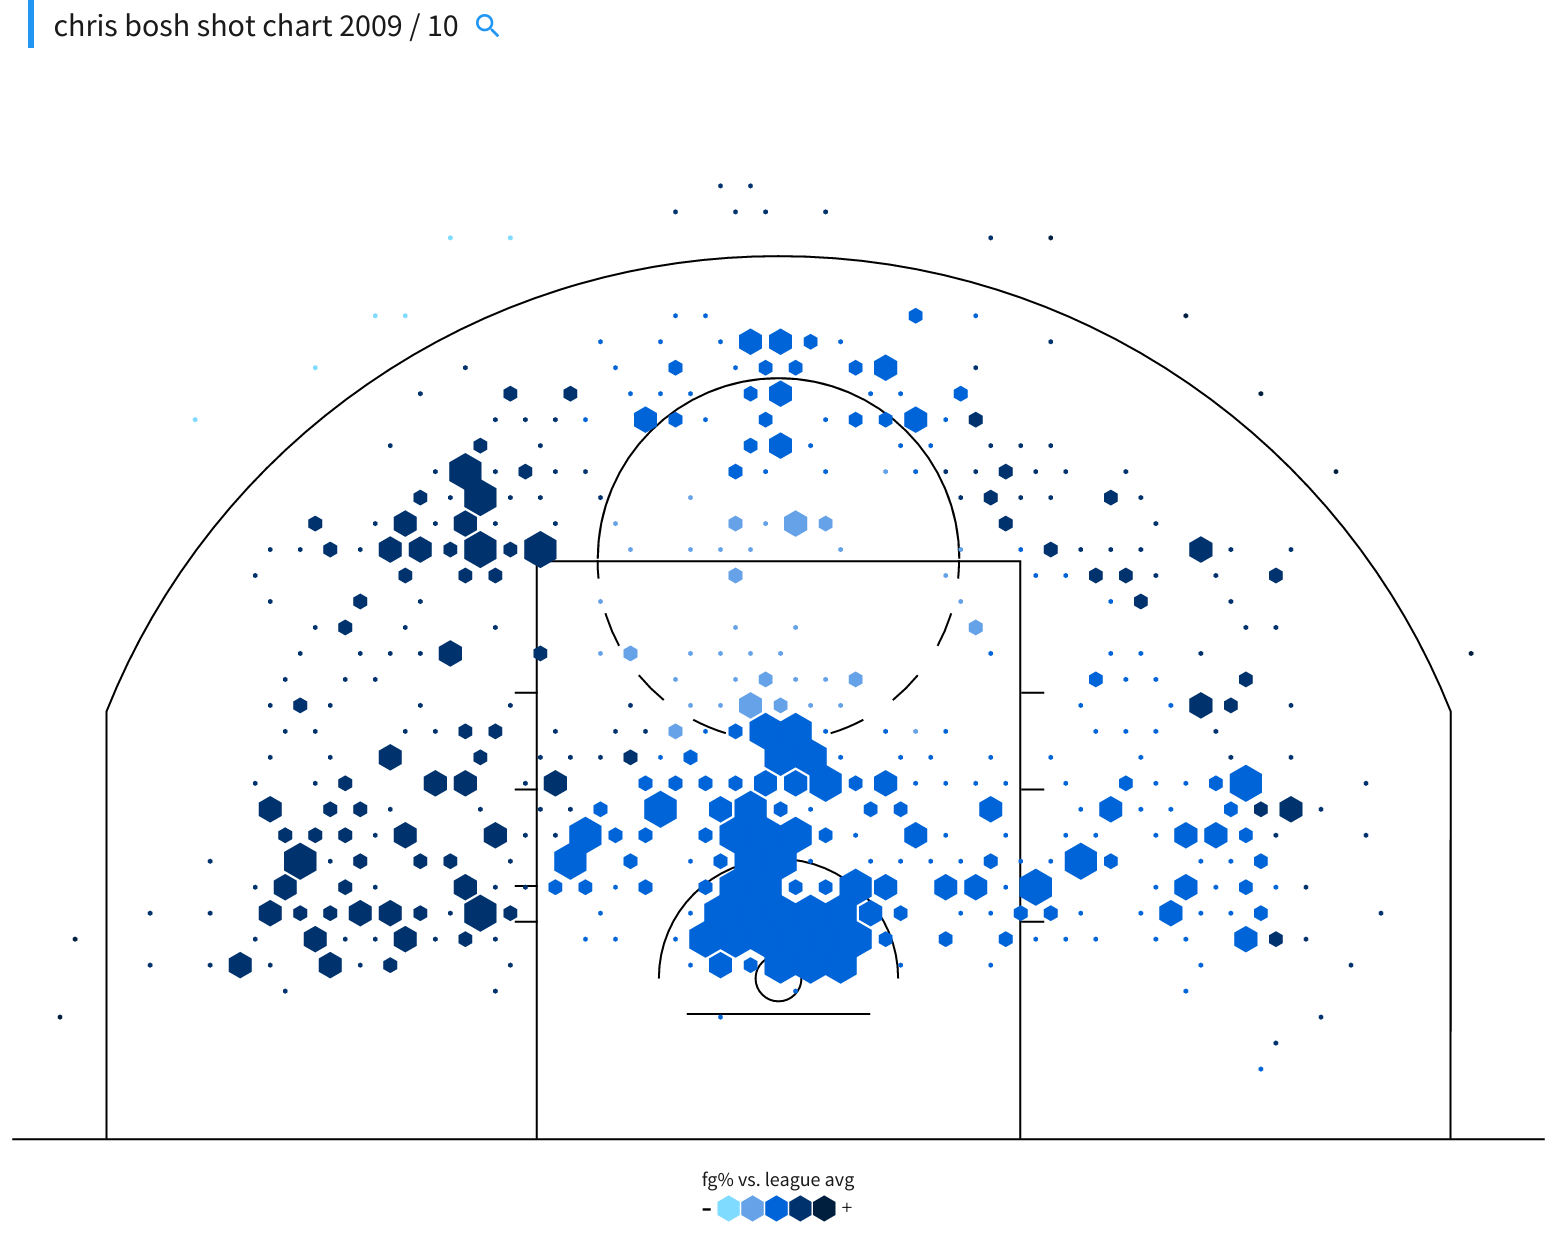 Chris Bosh shot chart 2009-10